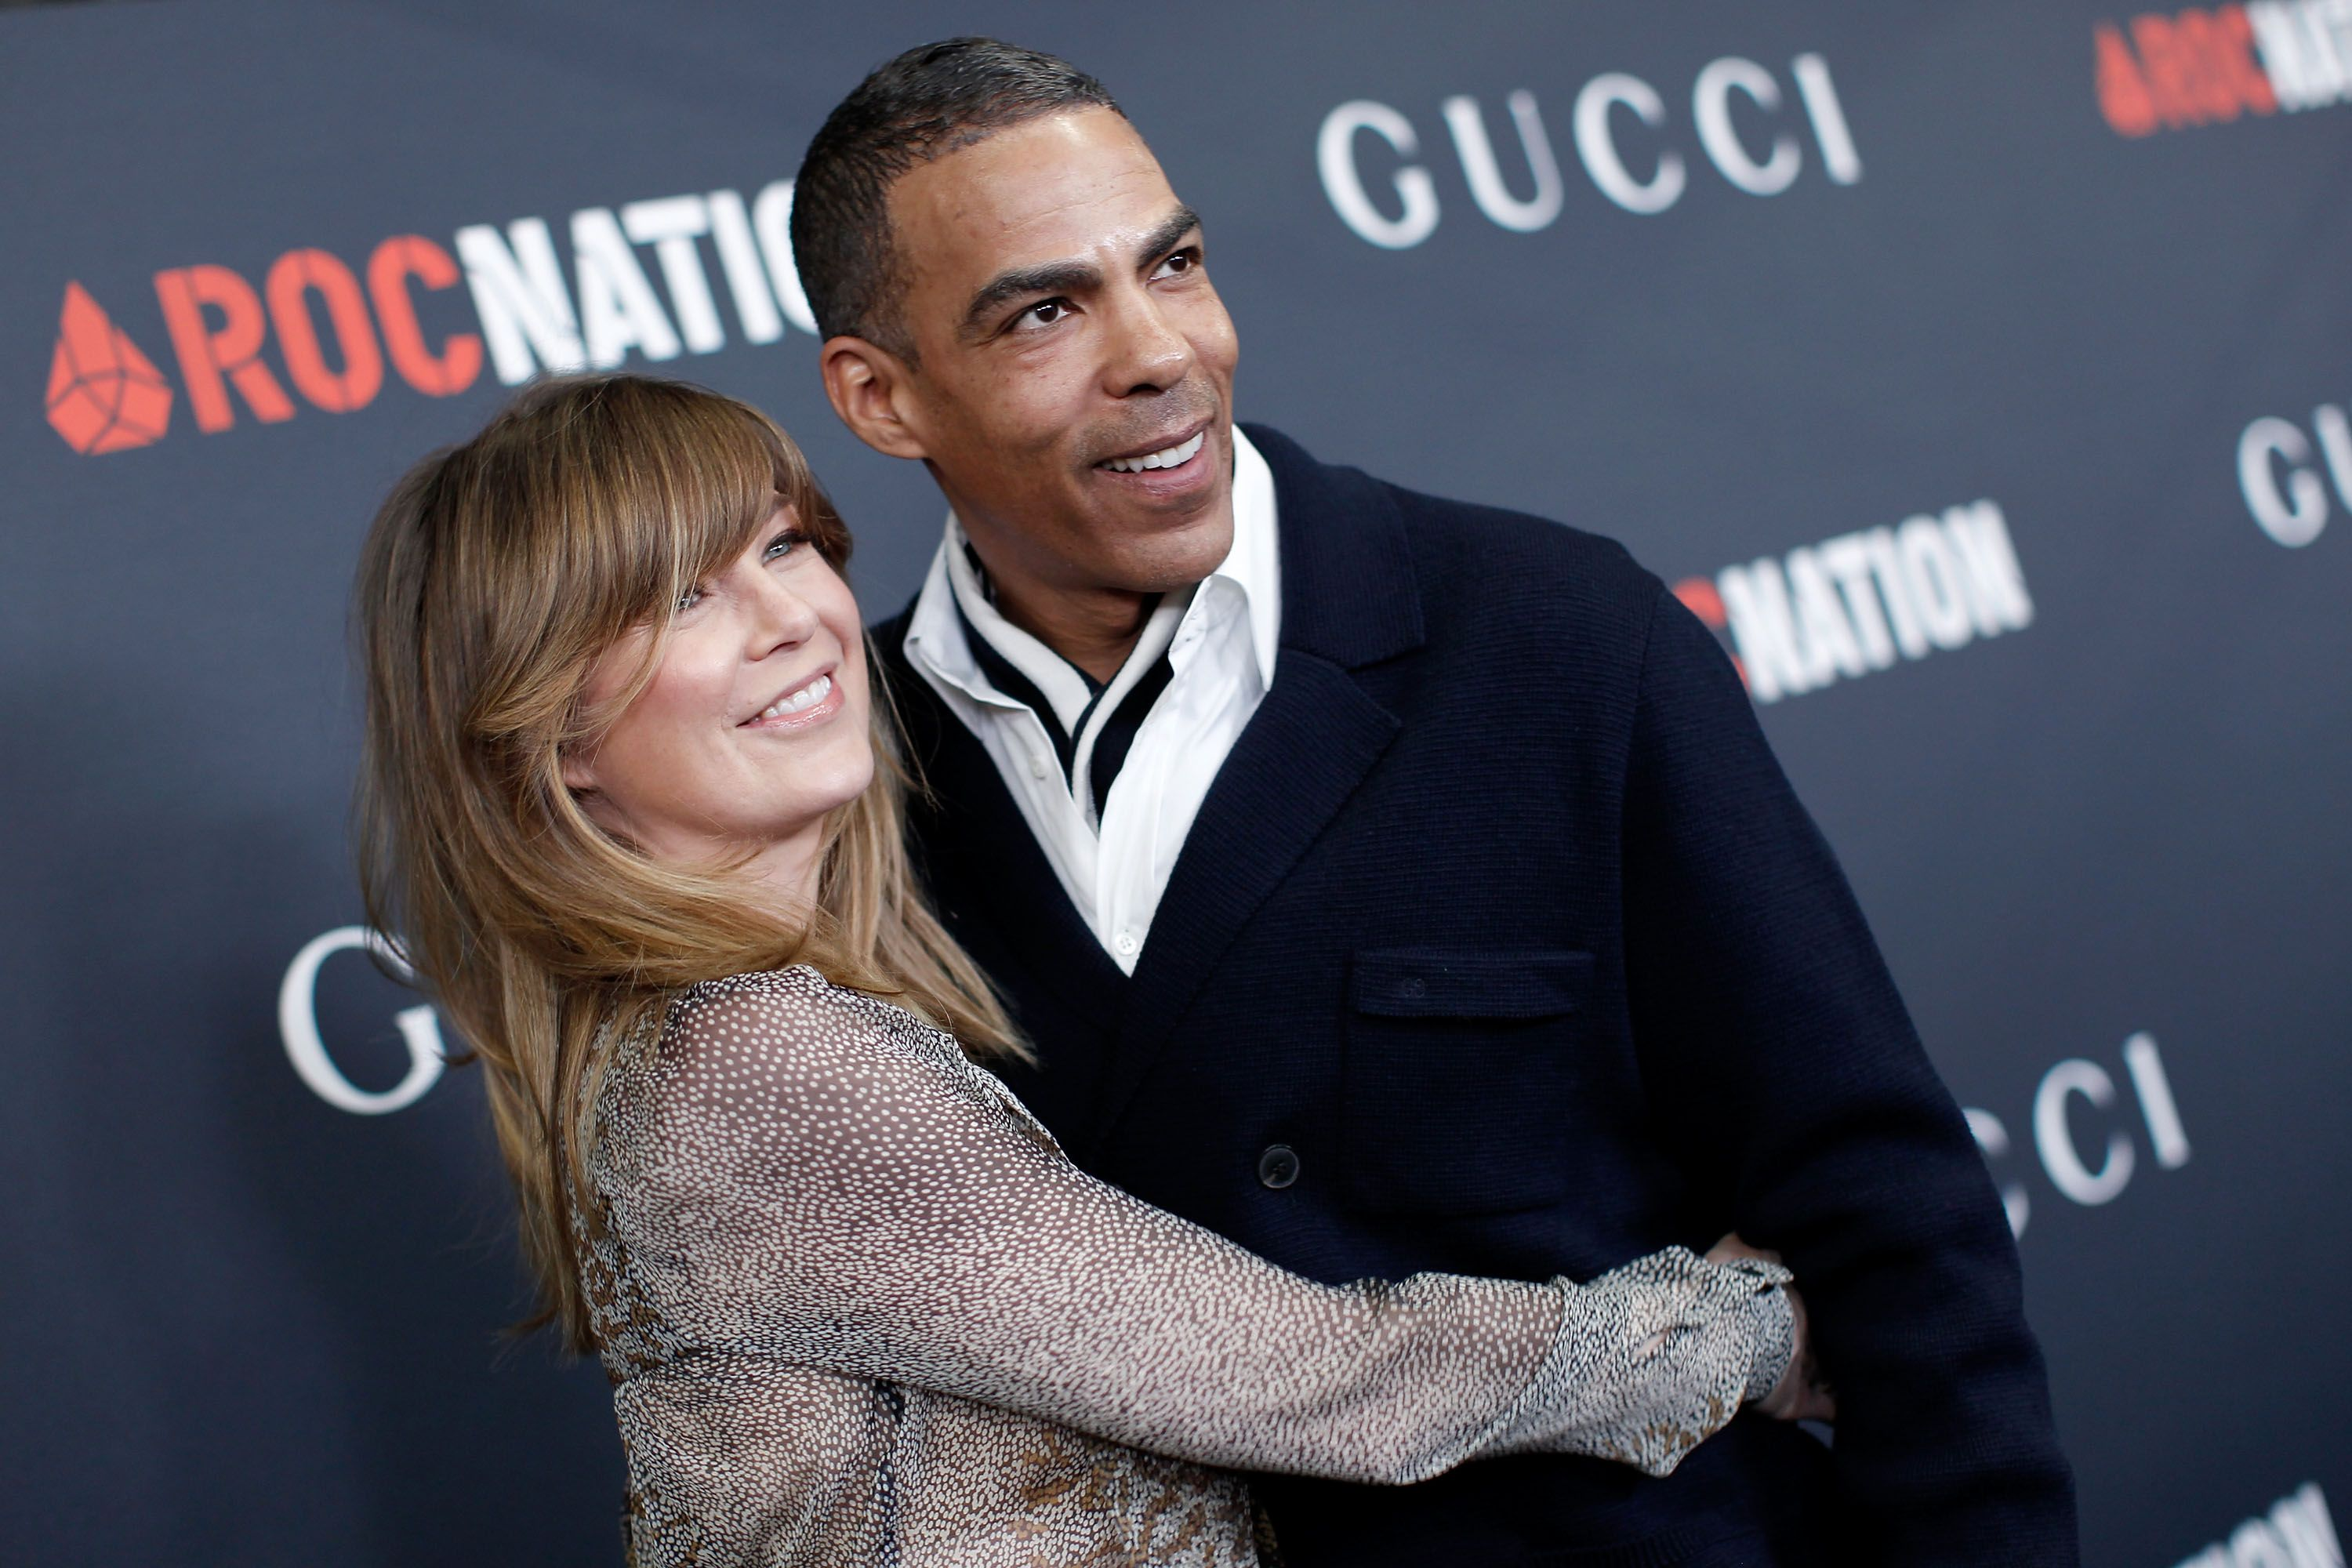 Ellen Pompeo andChris Ivery at the Gucci and RocNation Pre-Grammybrunchon February 12, 2011, in West Hollywood, California   Photo:Christopher Polk/Getty Images